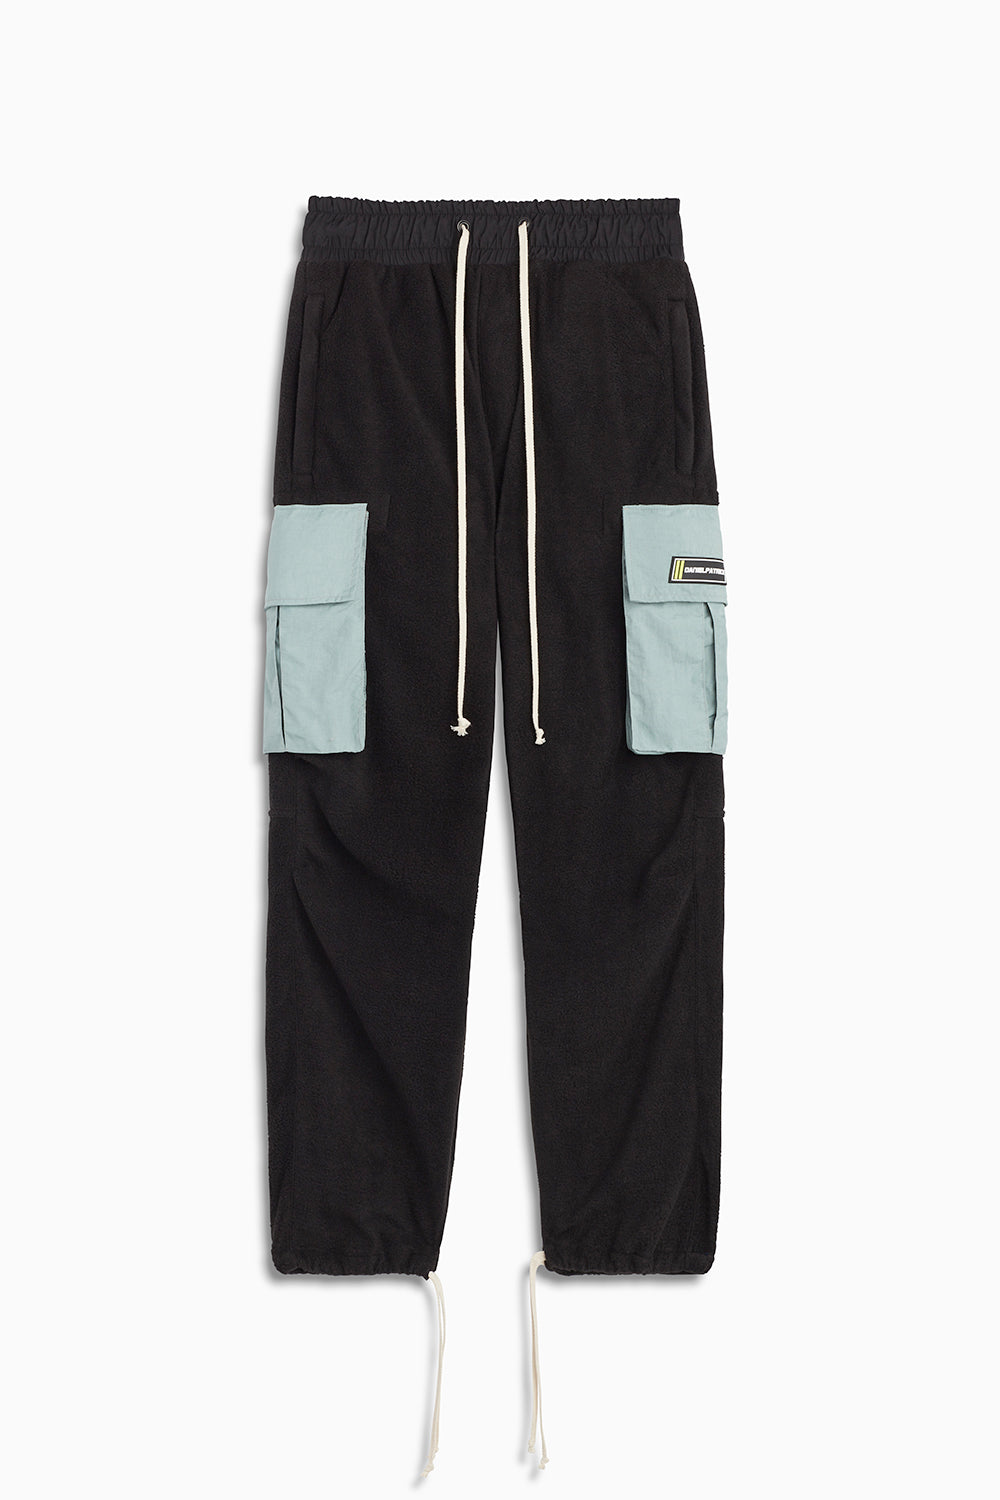 M93 cargo pants in black polar fleece/sea foam by daniel patrick